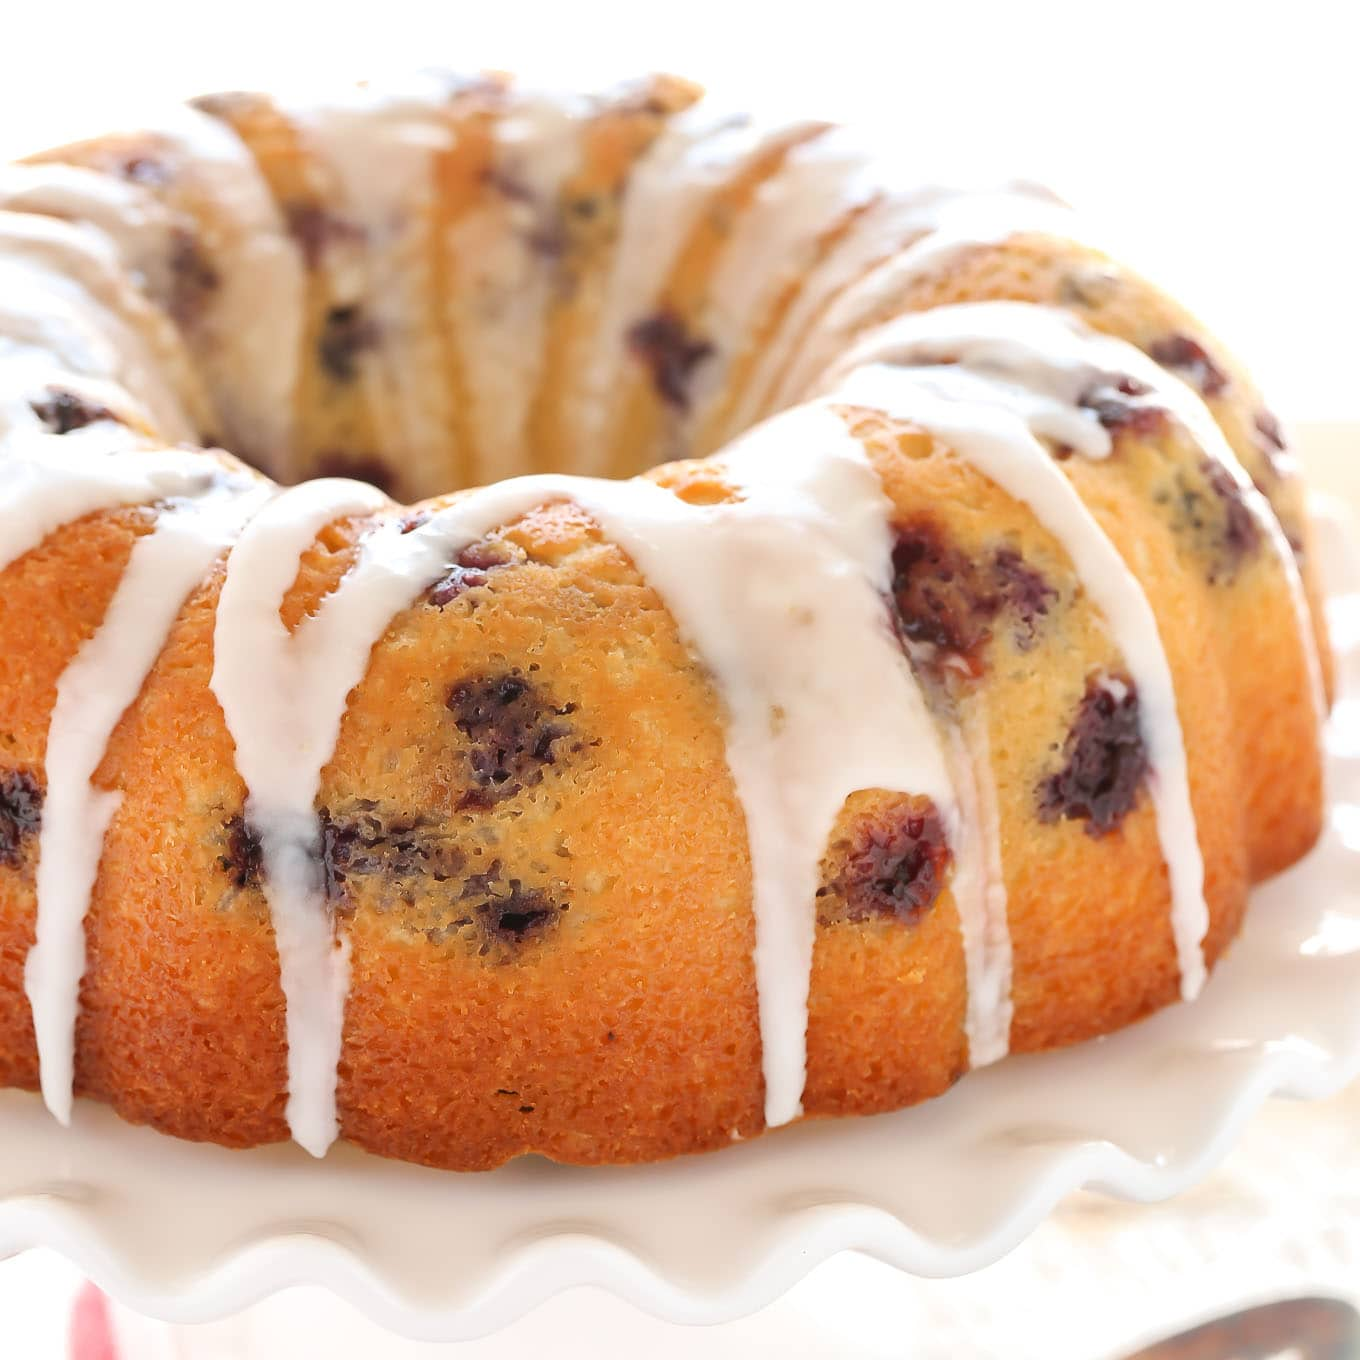 A moist lemon bundt cake filled with fresh blueberries and topped with a sweet lemon glaze. This Lemon Blueberry Bundt Cake is a perfect dessert for lemon lovers!